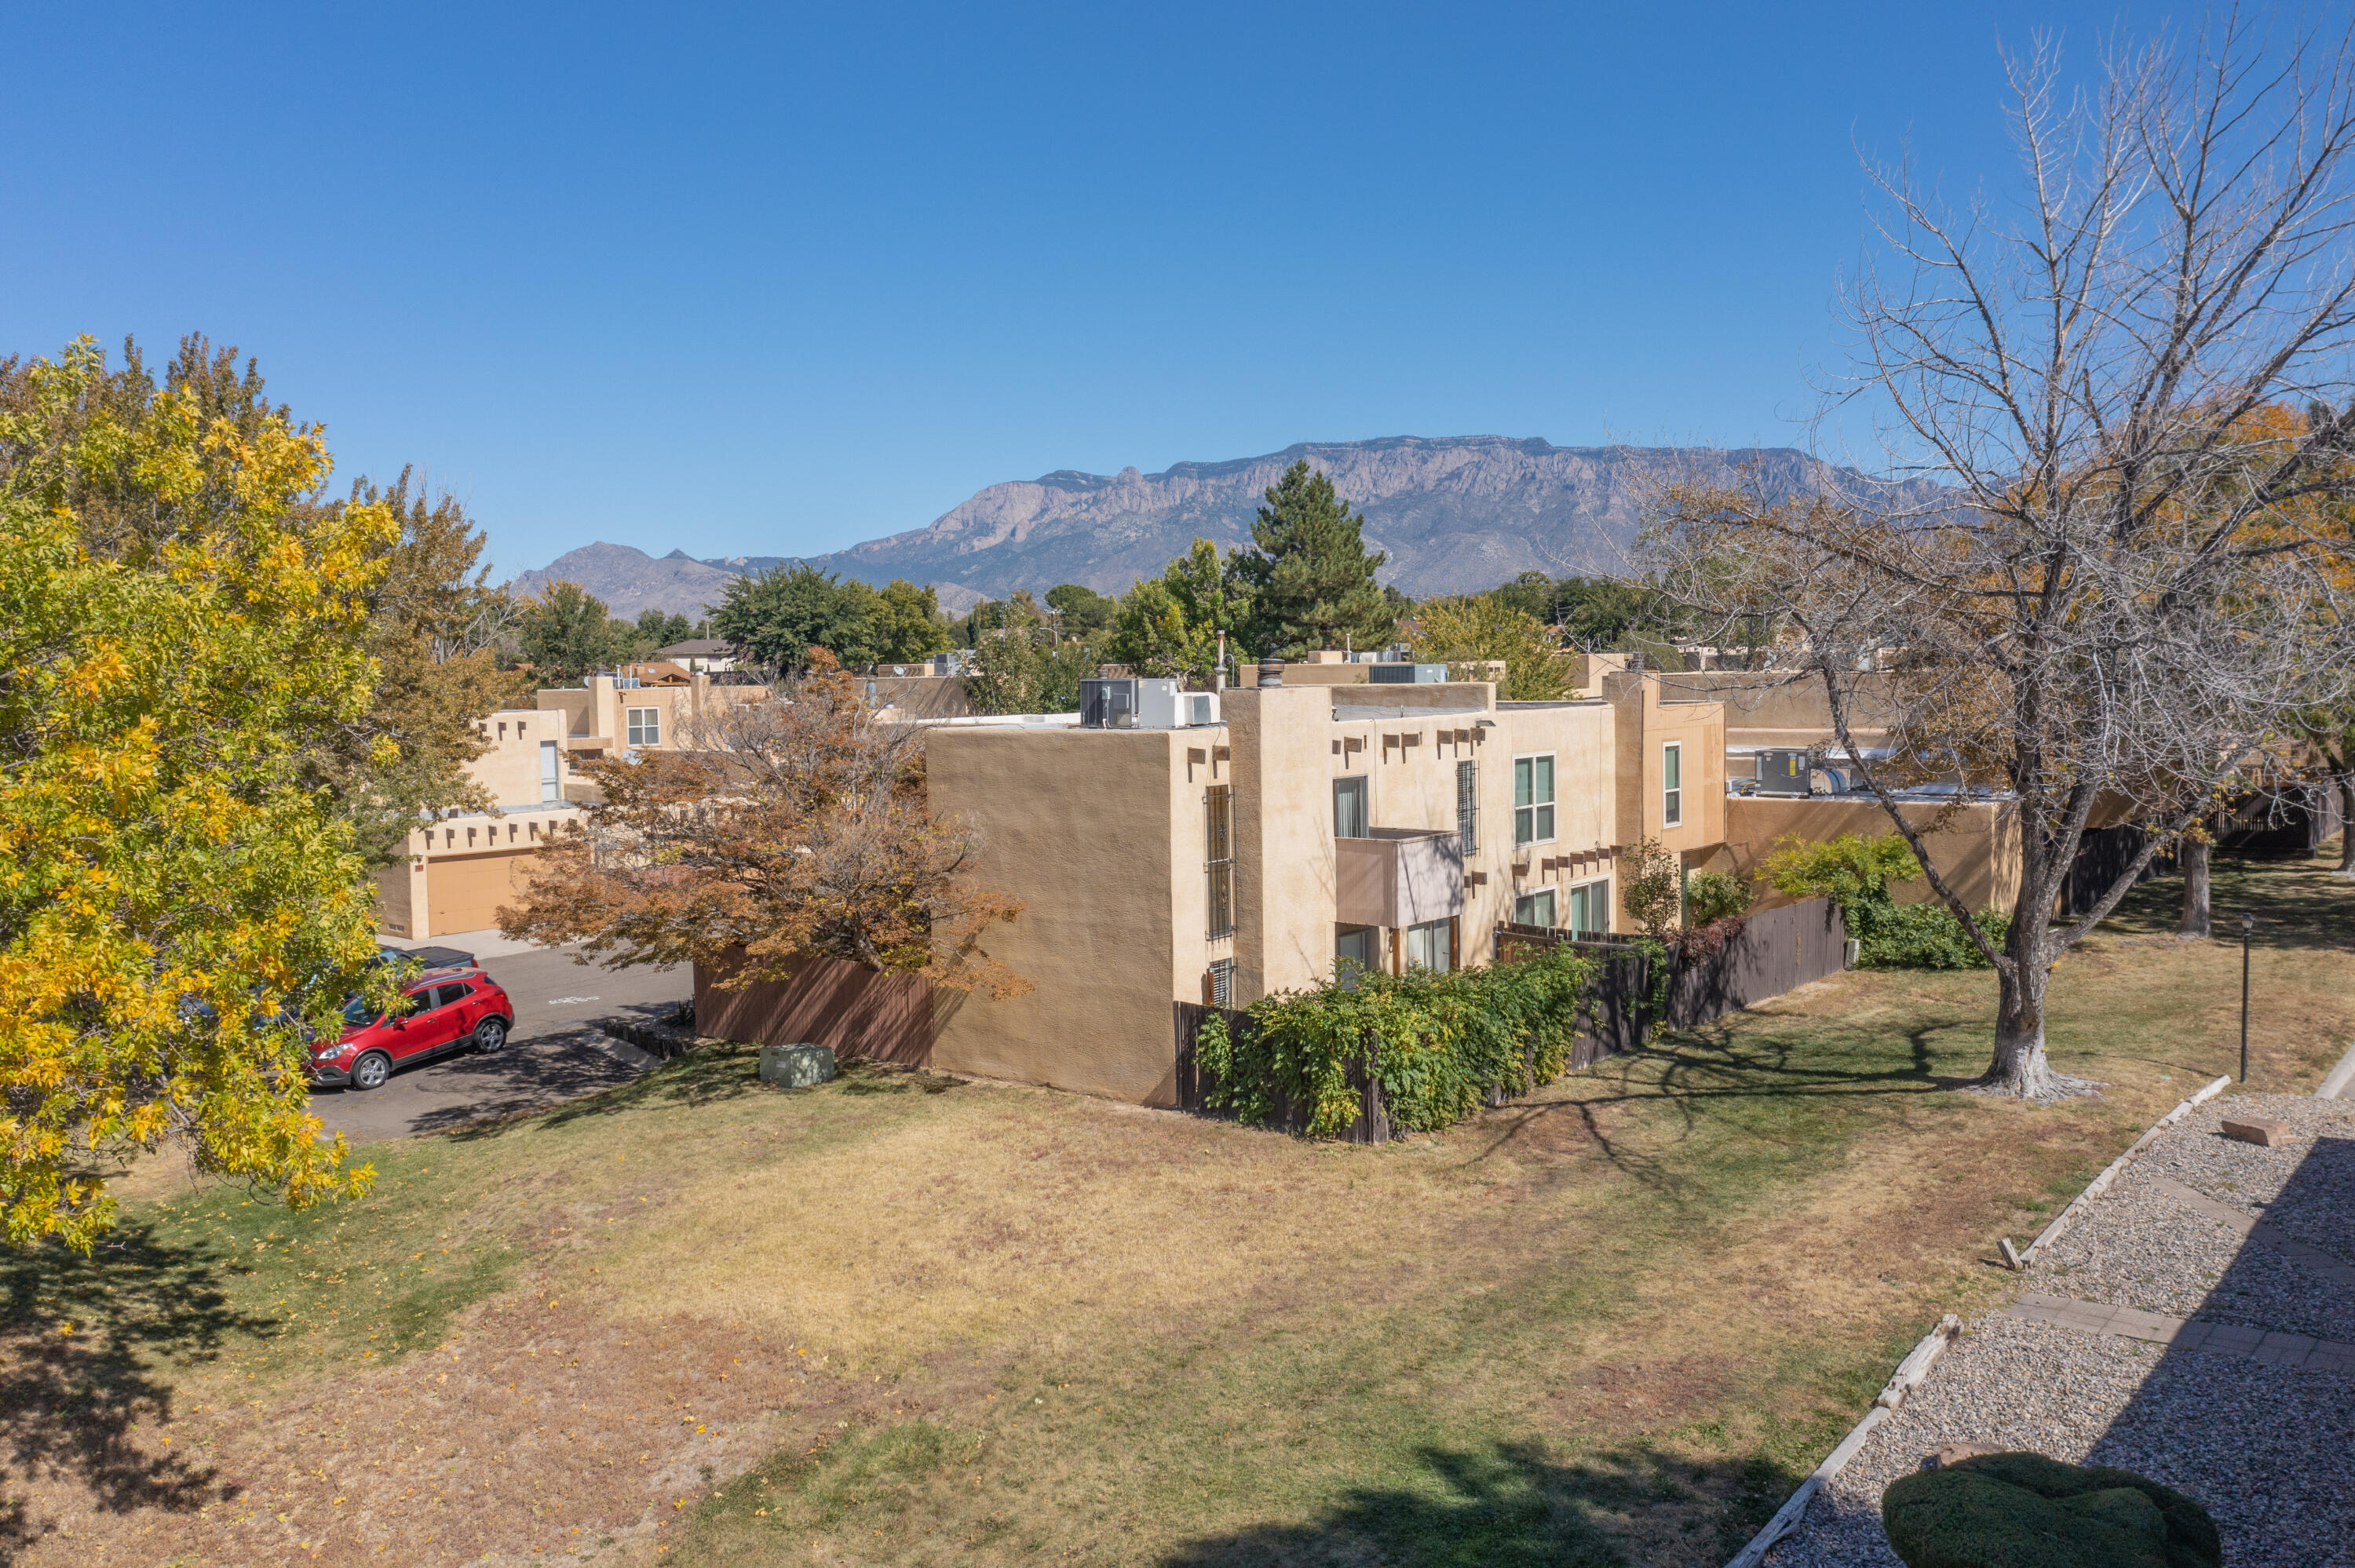 Welcome to this Bright, Beautiful, Updated, Move-in Ready 3-Bedroom Townhome in Northeast Albuquerque! *Community Pool + Refrigerated A/C!* 59 Plaza De La Noche greets you with a Stately, Soaring Raised-Ceiling, Gleaming Bamboo Wood Flooring, and a Toasty Wood-Burning Fireplace in the Main Living Area. This Renovated, Open Kitchen features Abundant Granite Counter Space, Bar-Seating, Pantry, plus Plenty of Storage. Appliances Included! Covered Patio w/ Lush Vegetation is Ideal for Entertaining or Simply Sipping Coffee in the Morning. Your Spacious Master Suite offers a Private Balcony, Sitting Area, and Walk-in Closet. Refrigerated Air Keeps You Cool during warmer months. A Sparkling Pool (Maintained by HOA) makes 59 Plaza De La Noche the Perfect Summer Staycation! Schedule your tour today